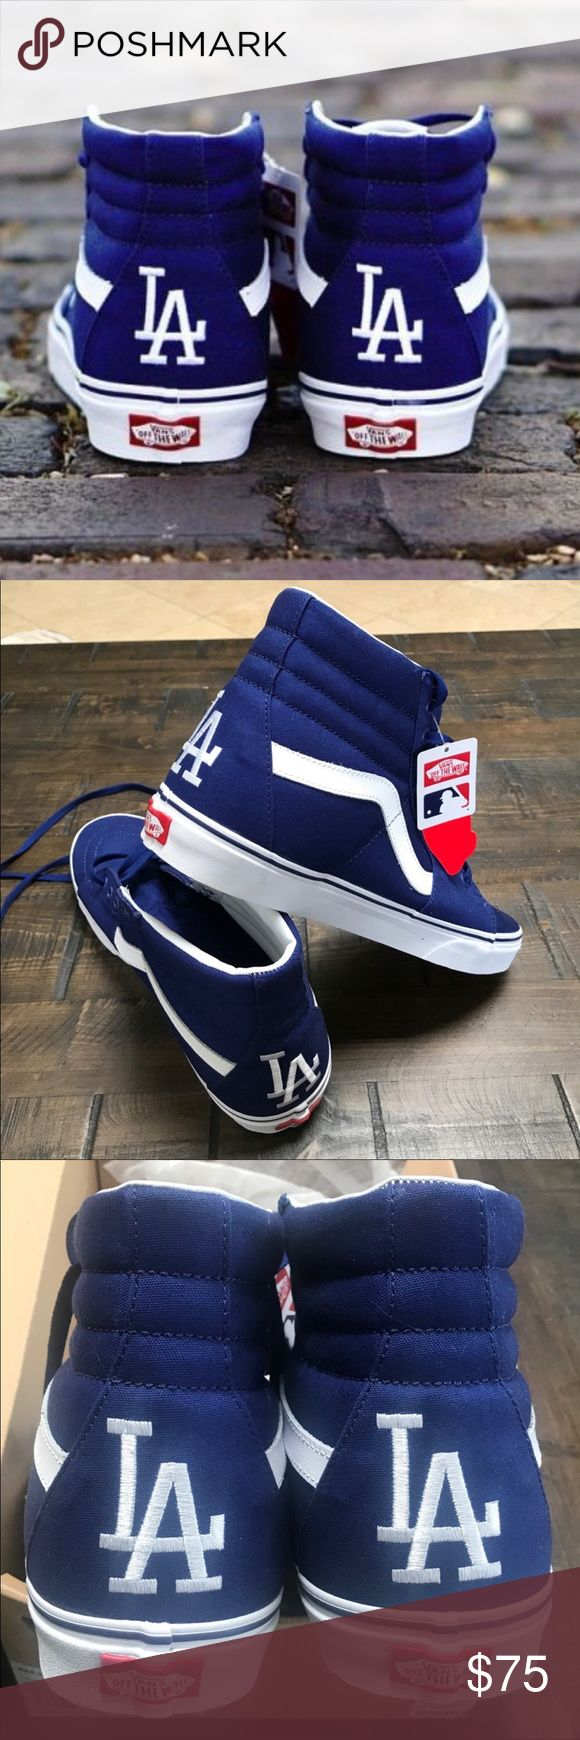 NWB  LA DODGERS SK8 Hi Vans Size 12 MENS NEW WITH ORIGINAL BOX  ONE PAIR AVAILABLE. LOS ANGELES SK8 HI VANS. YOU DONT NEED TO BE A DODGER FAN TO REP THESE. MENS SIZE 12.  PRICED FIRM NO OFFERS PLEASE.   Ships same or next day. Smoke free home.   100% AUTHENTIC. AS PER USUAL.  Vans Shoes Sneakers